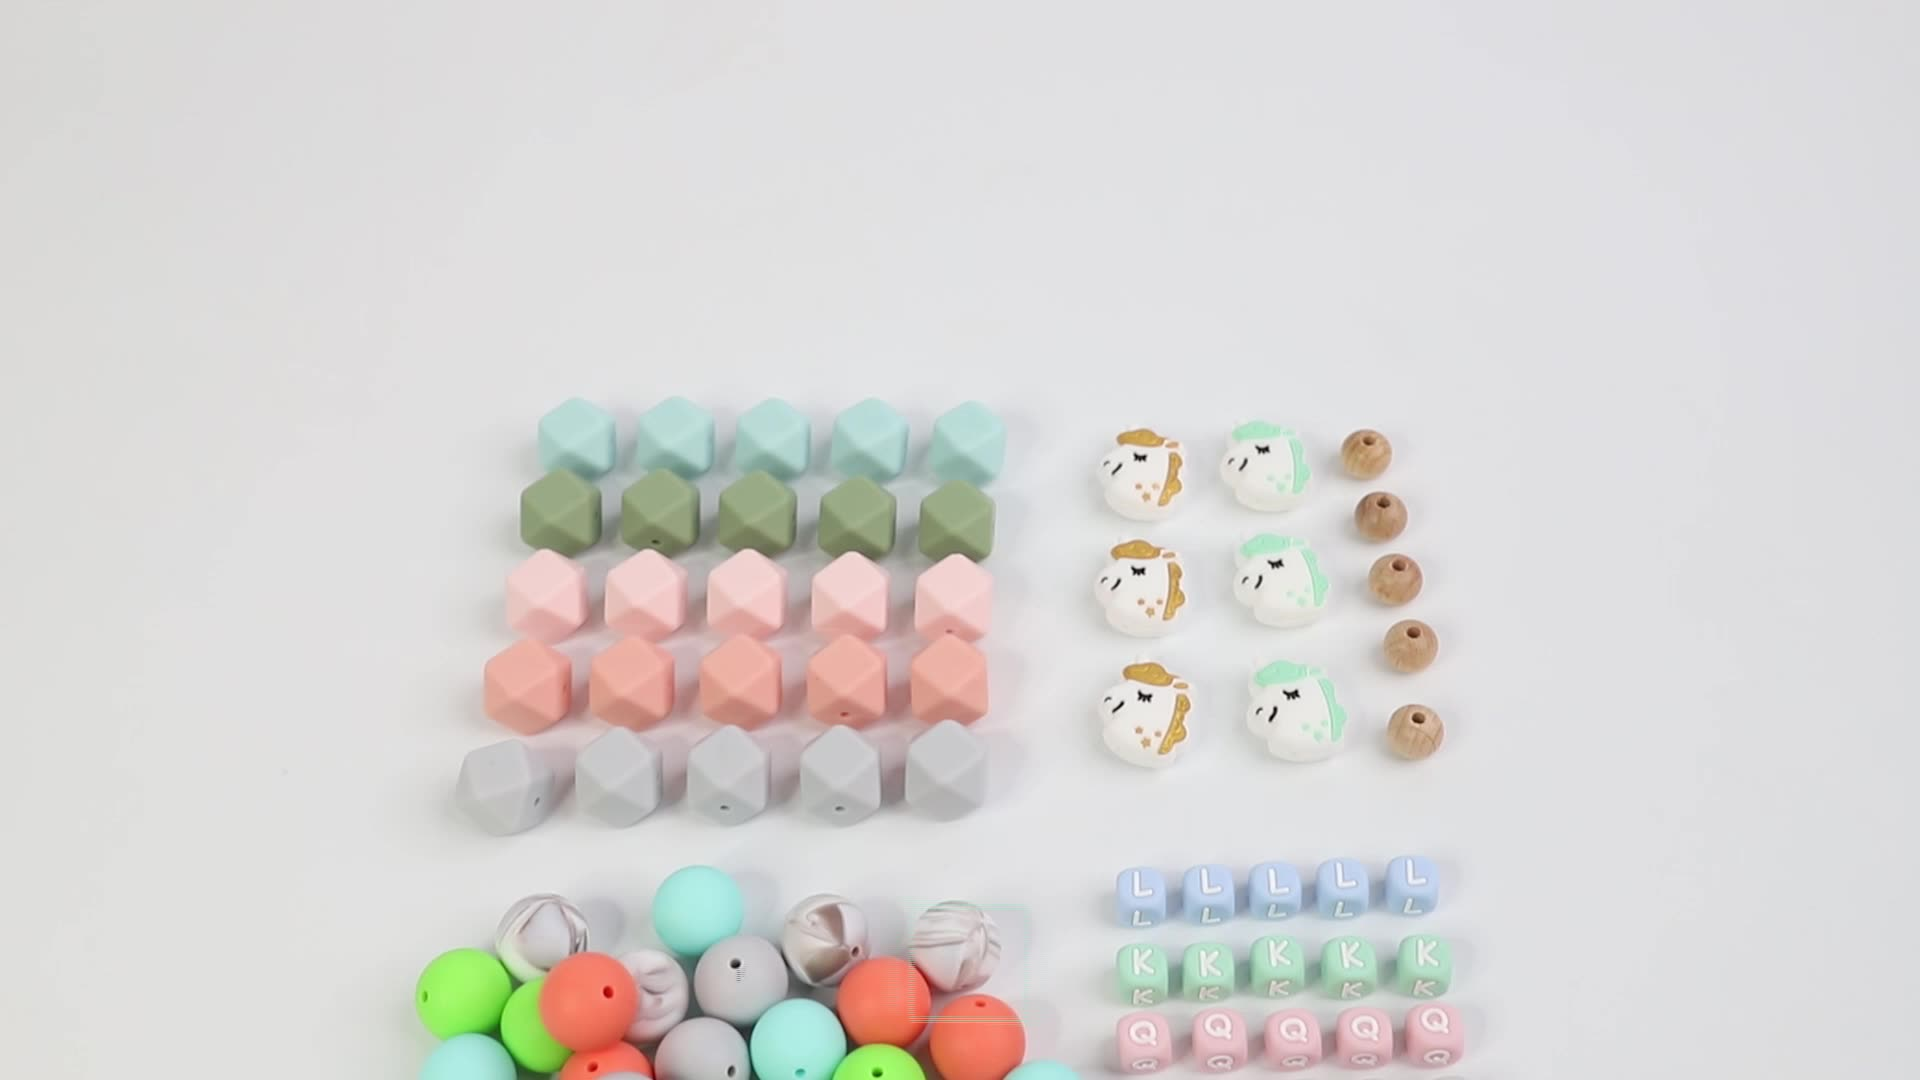 Fashion and environmentally friendly silicone beads